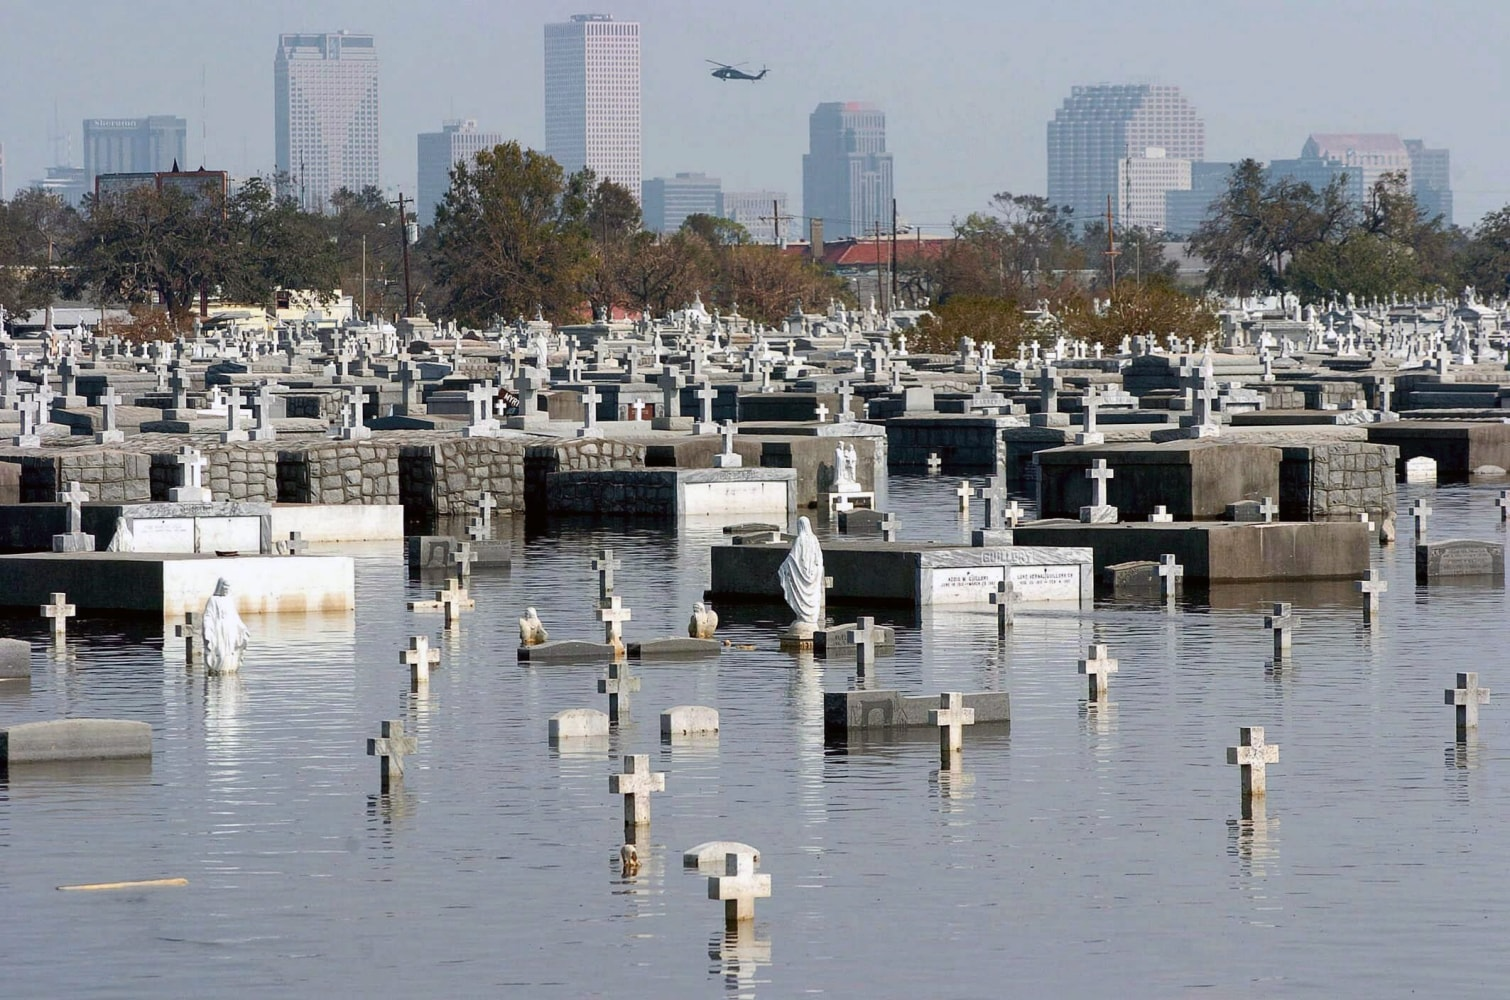 term papers on hurricane katrina Hurricane katrina in 2005 left a trail of great destruction lives were lost and property was destroyed this research paper will discuss its effects.